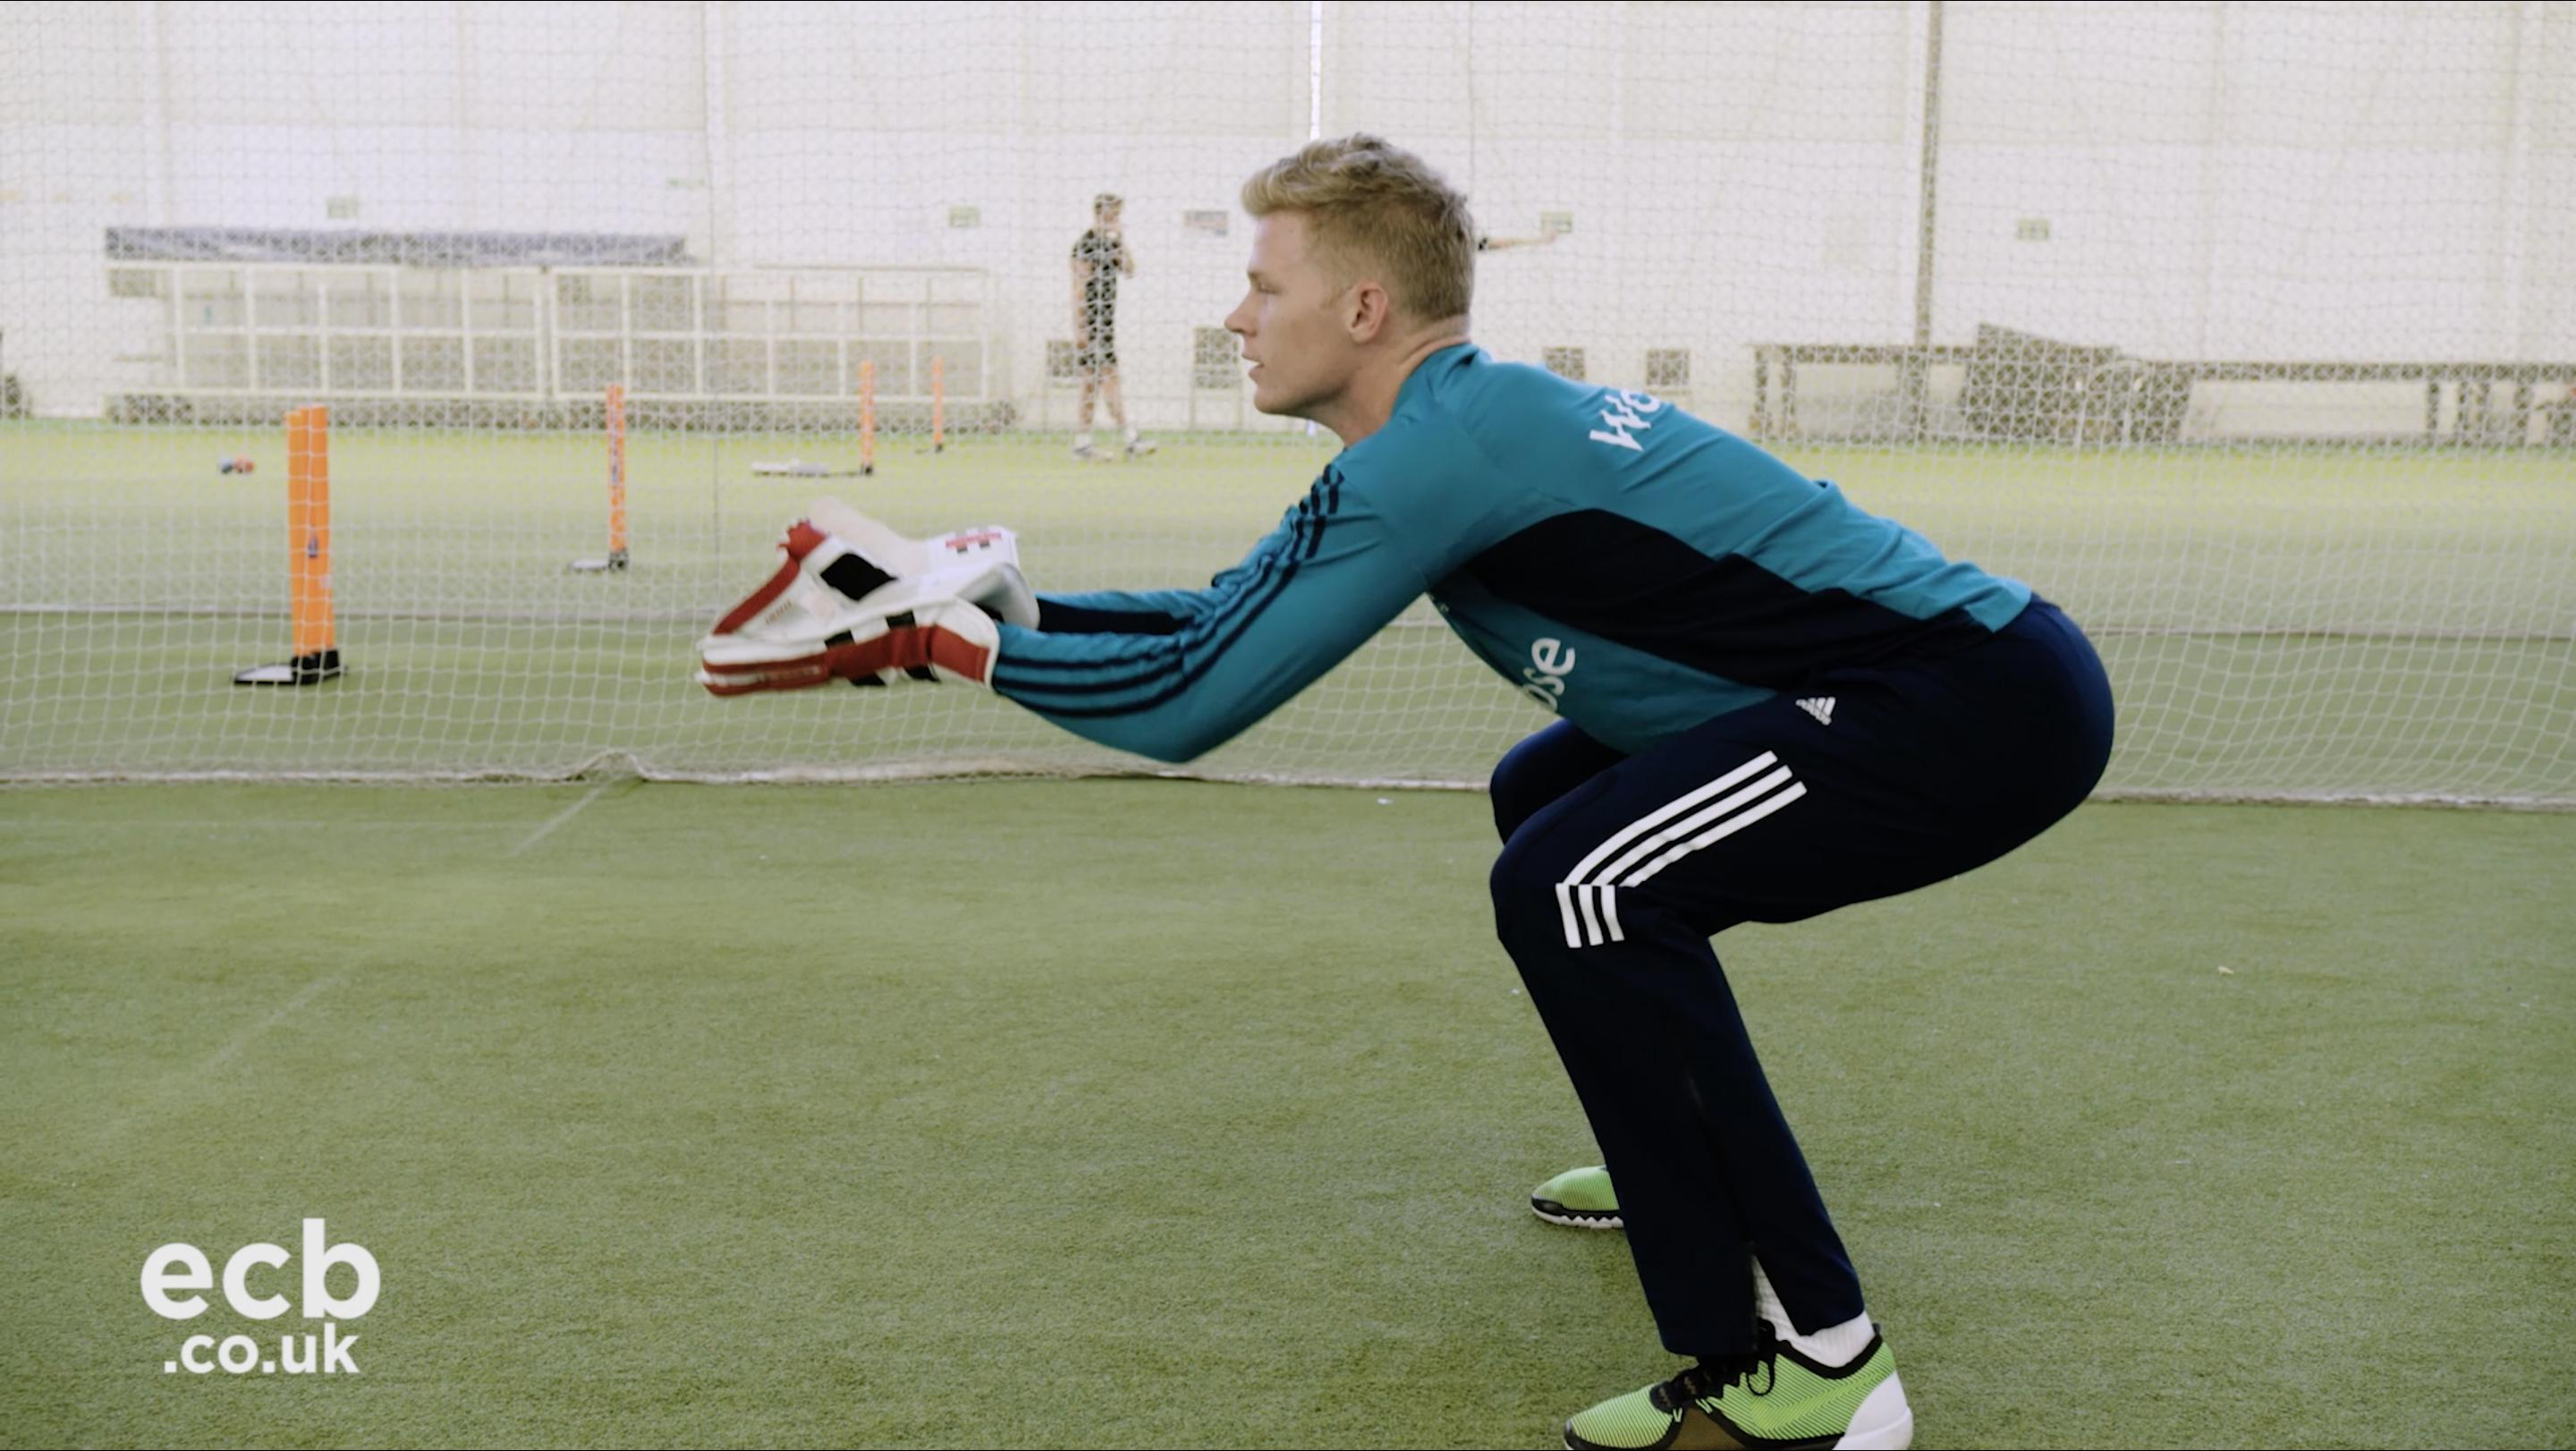 ecb.co.uk - Sam Billings on how to improve your positioning when wicketkeeping